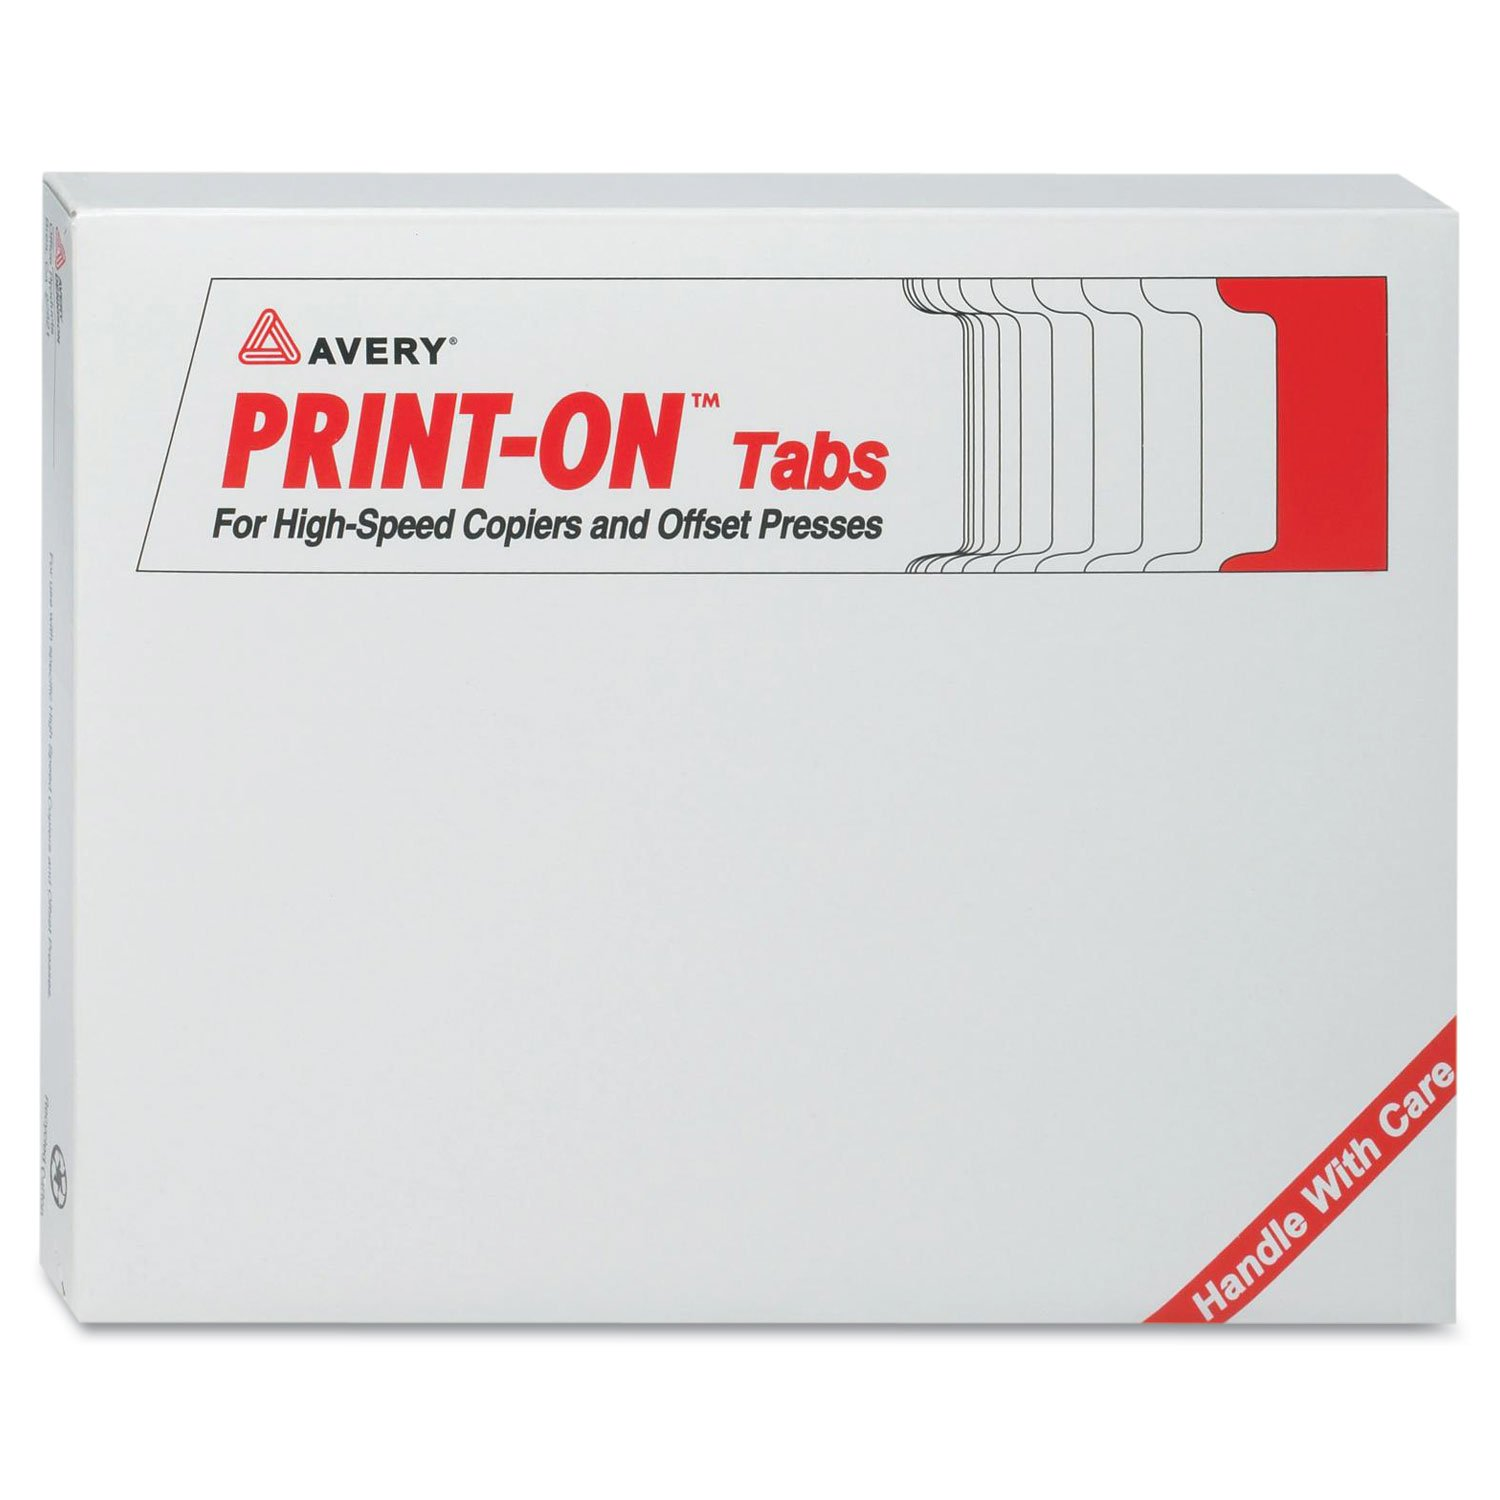 Avery 20406 Customizable Print-On Dividers, 5-Tab, Letter, 30 Sets